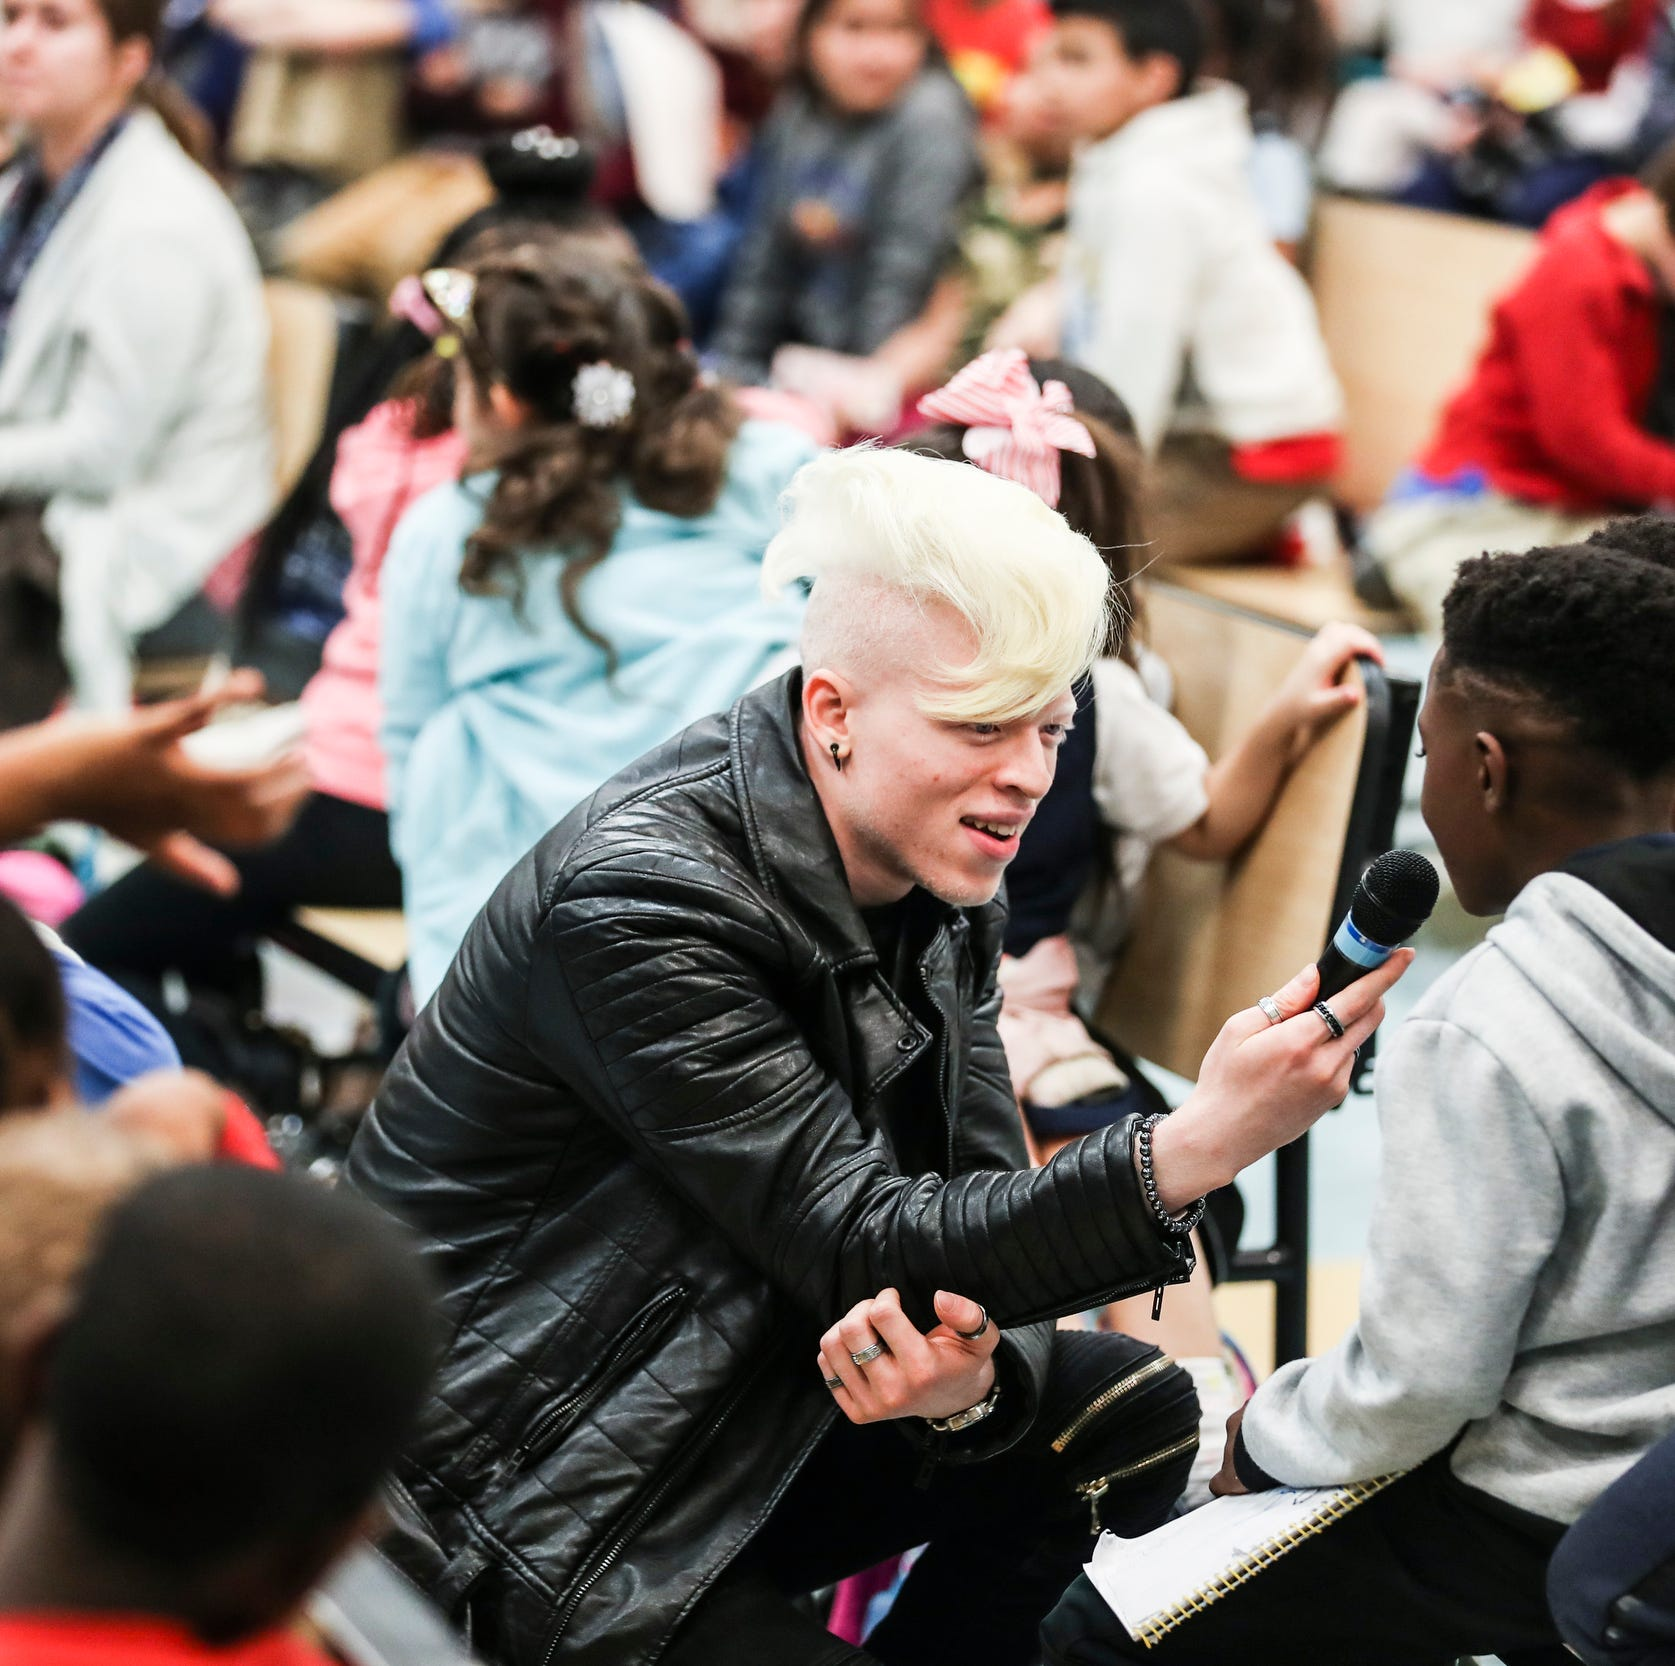 Memphis rapper Roben X, bullied over albinism, is showing others how to fight back with art